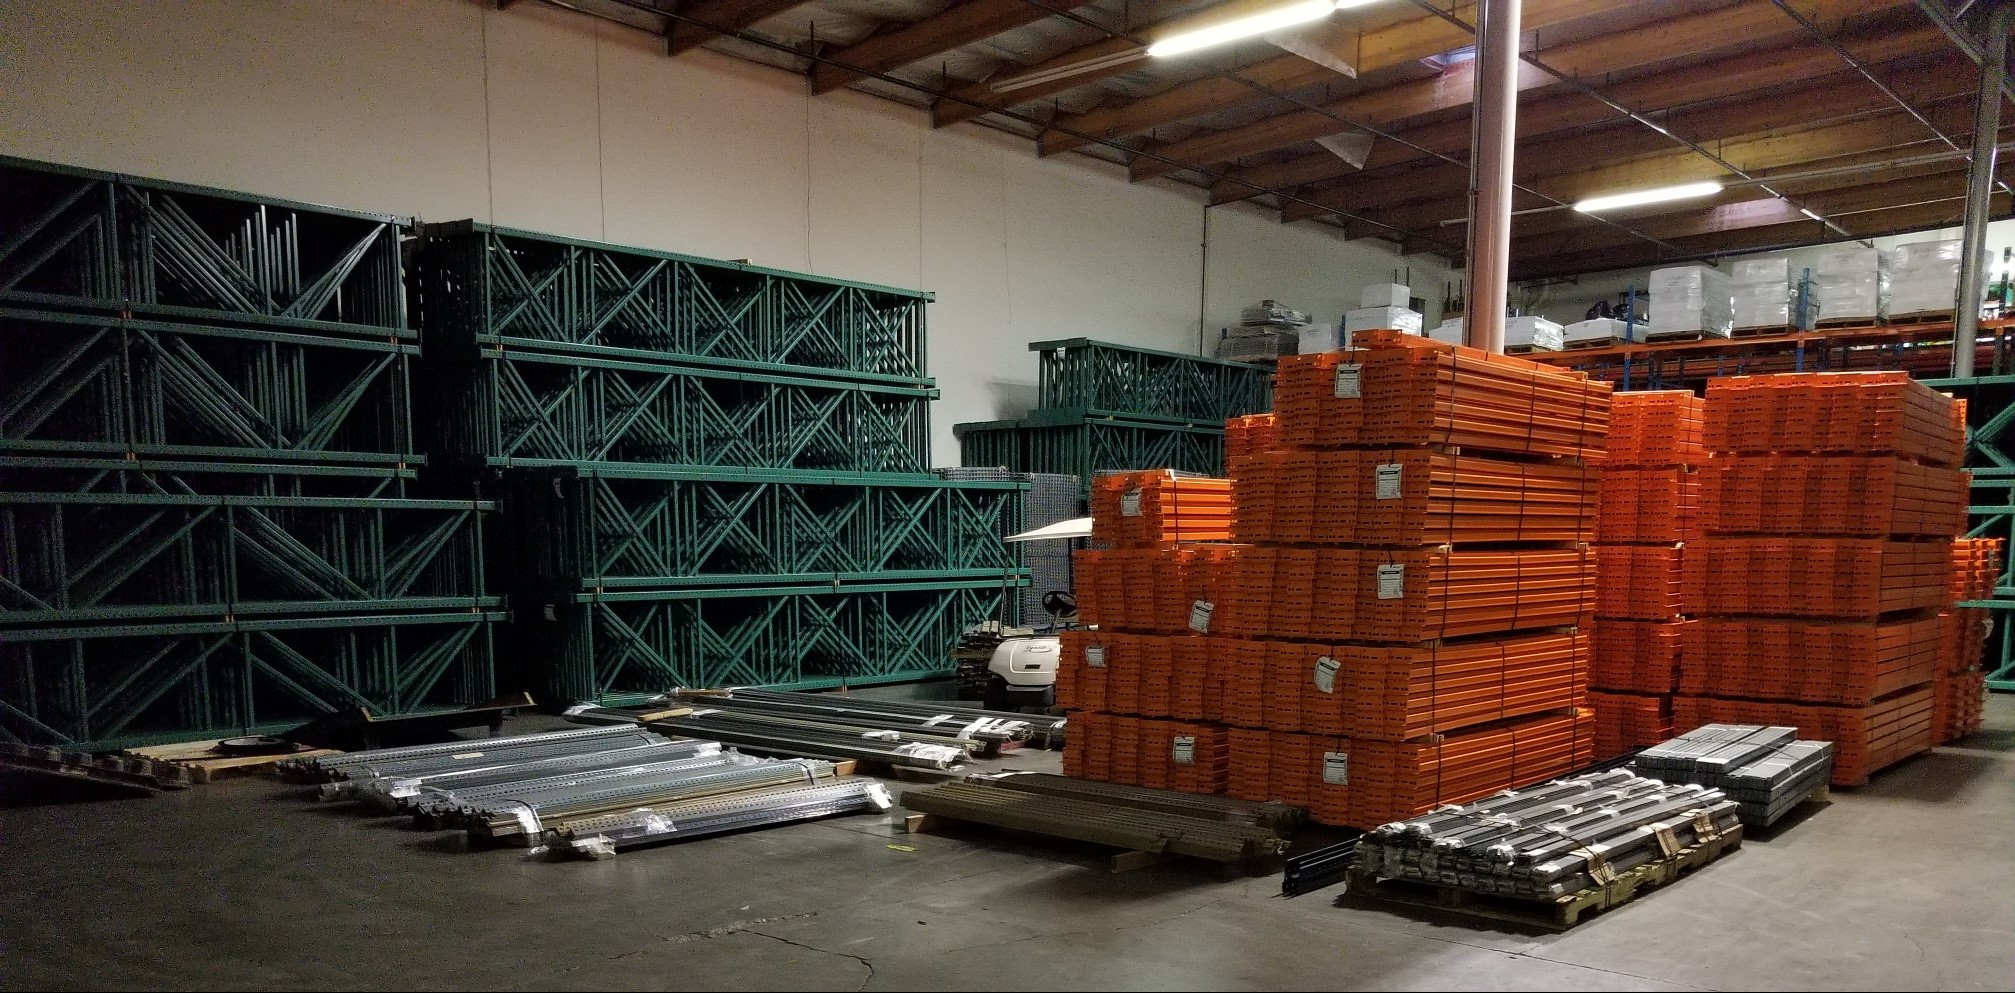 A&A Boltless Rack and Shelving Warehouse Storage Solutions